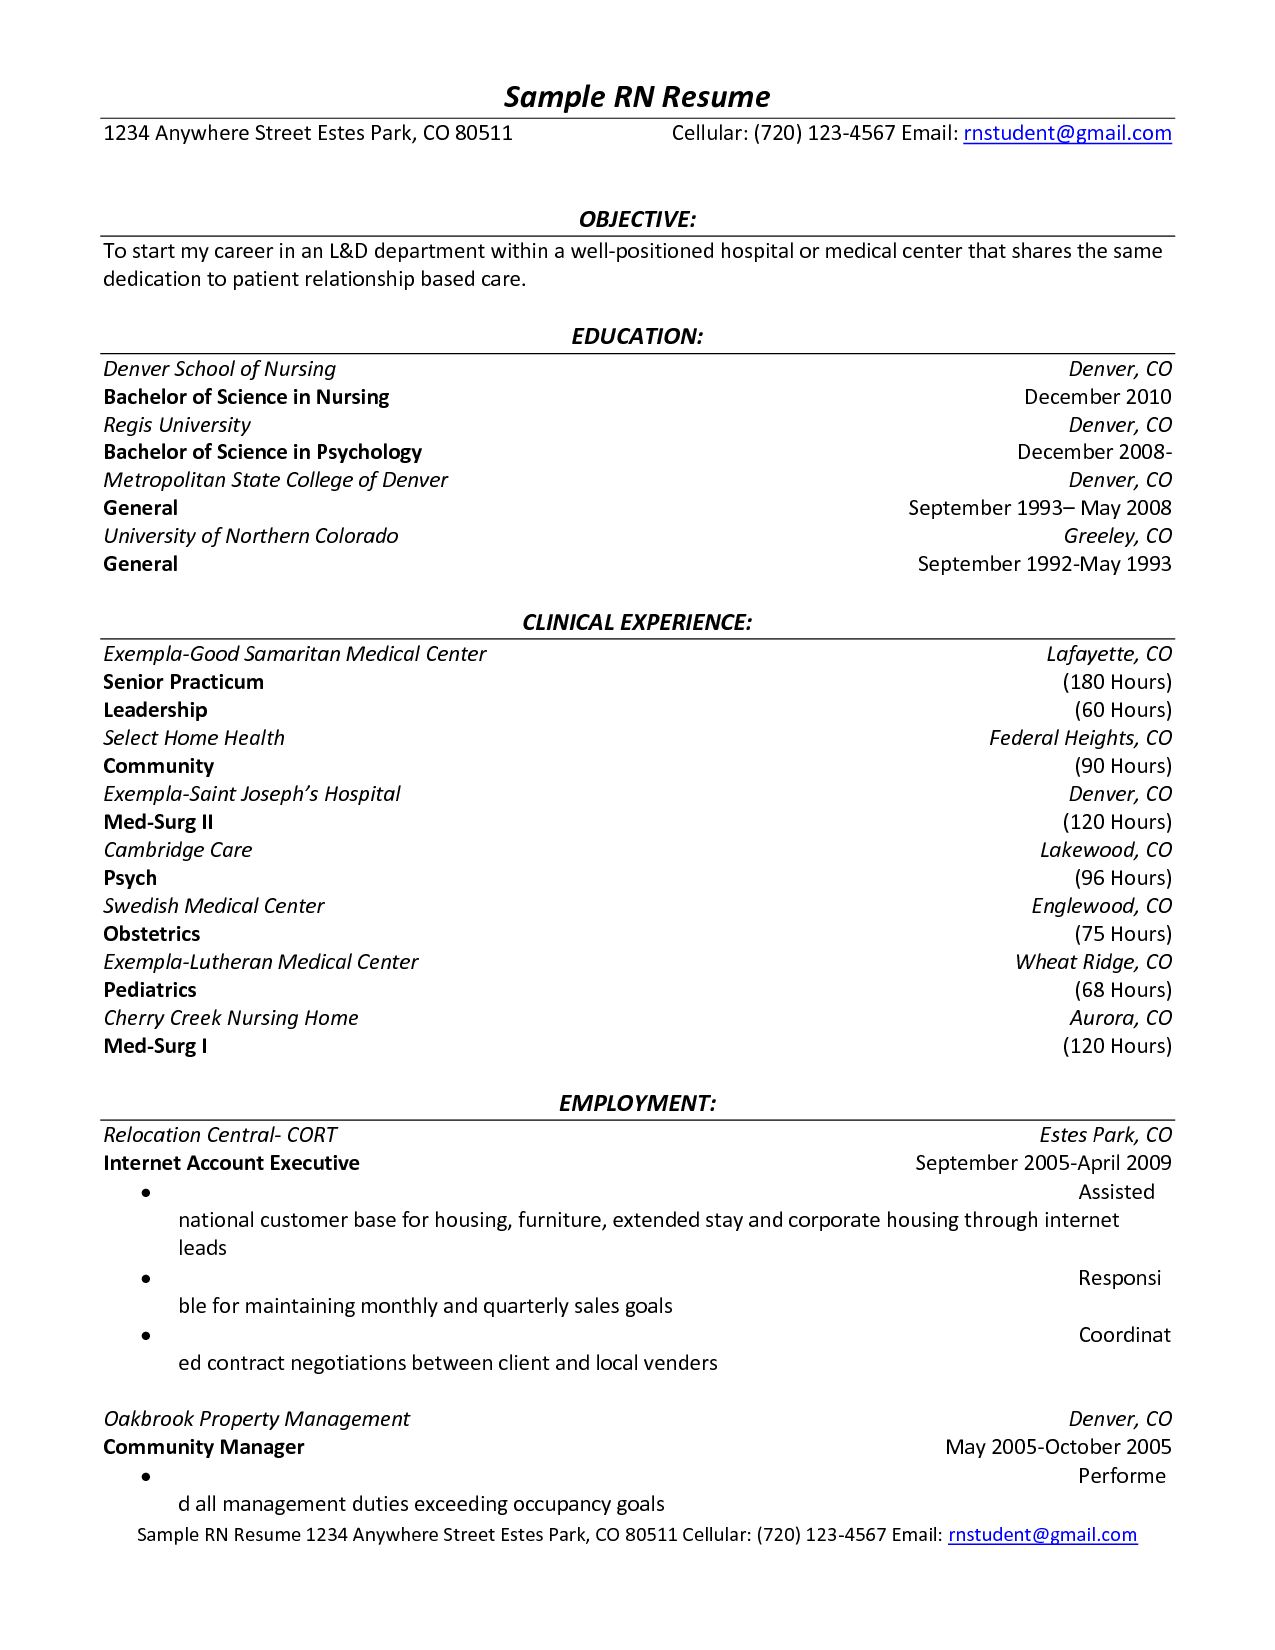 Resume For Hospital Job Sample Resume Hospital Volunteer Experience How To Startvolunteer